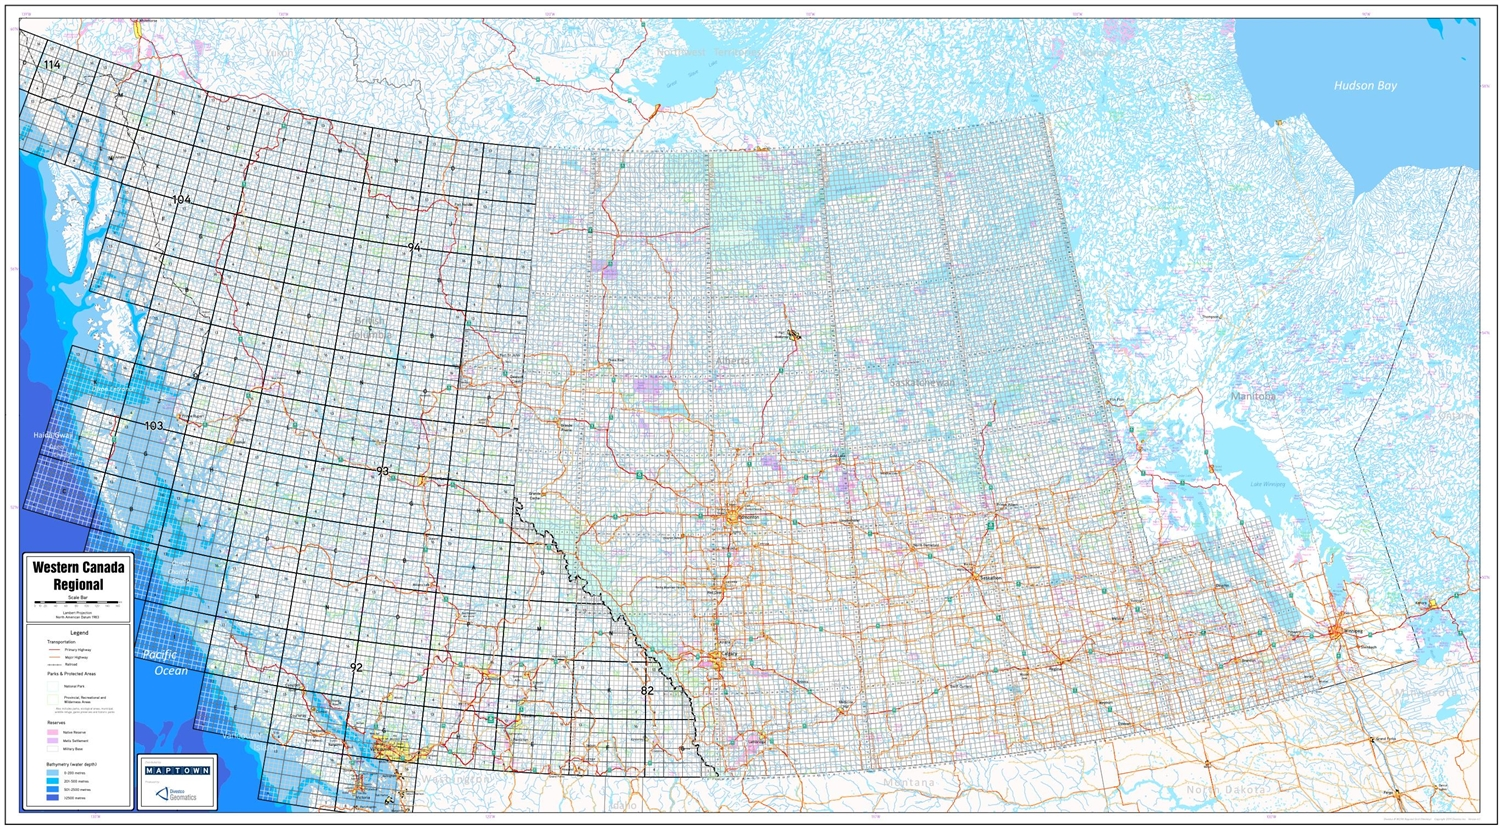 Alberta Canada Township Map Western Canada Regional Base Map with Township and NTS Grids. We